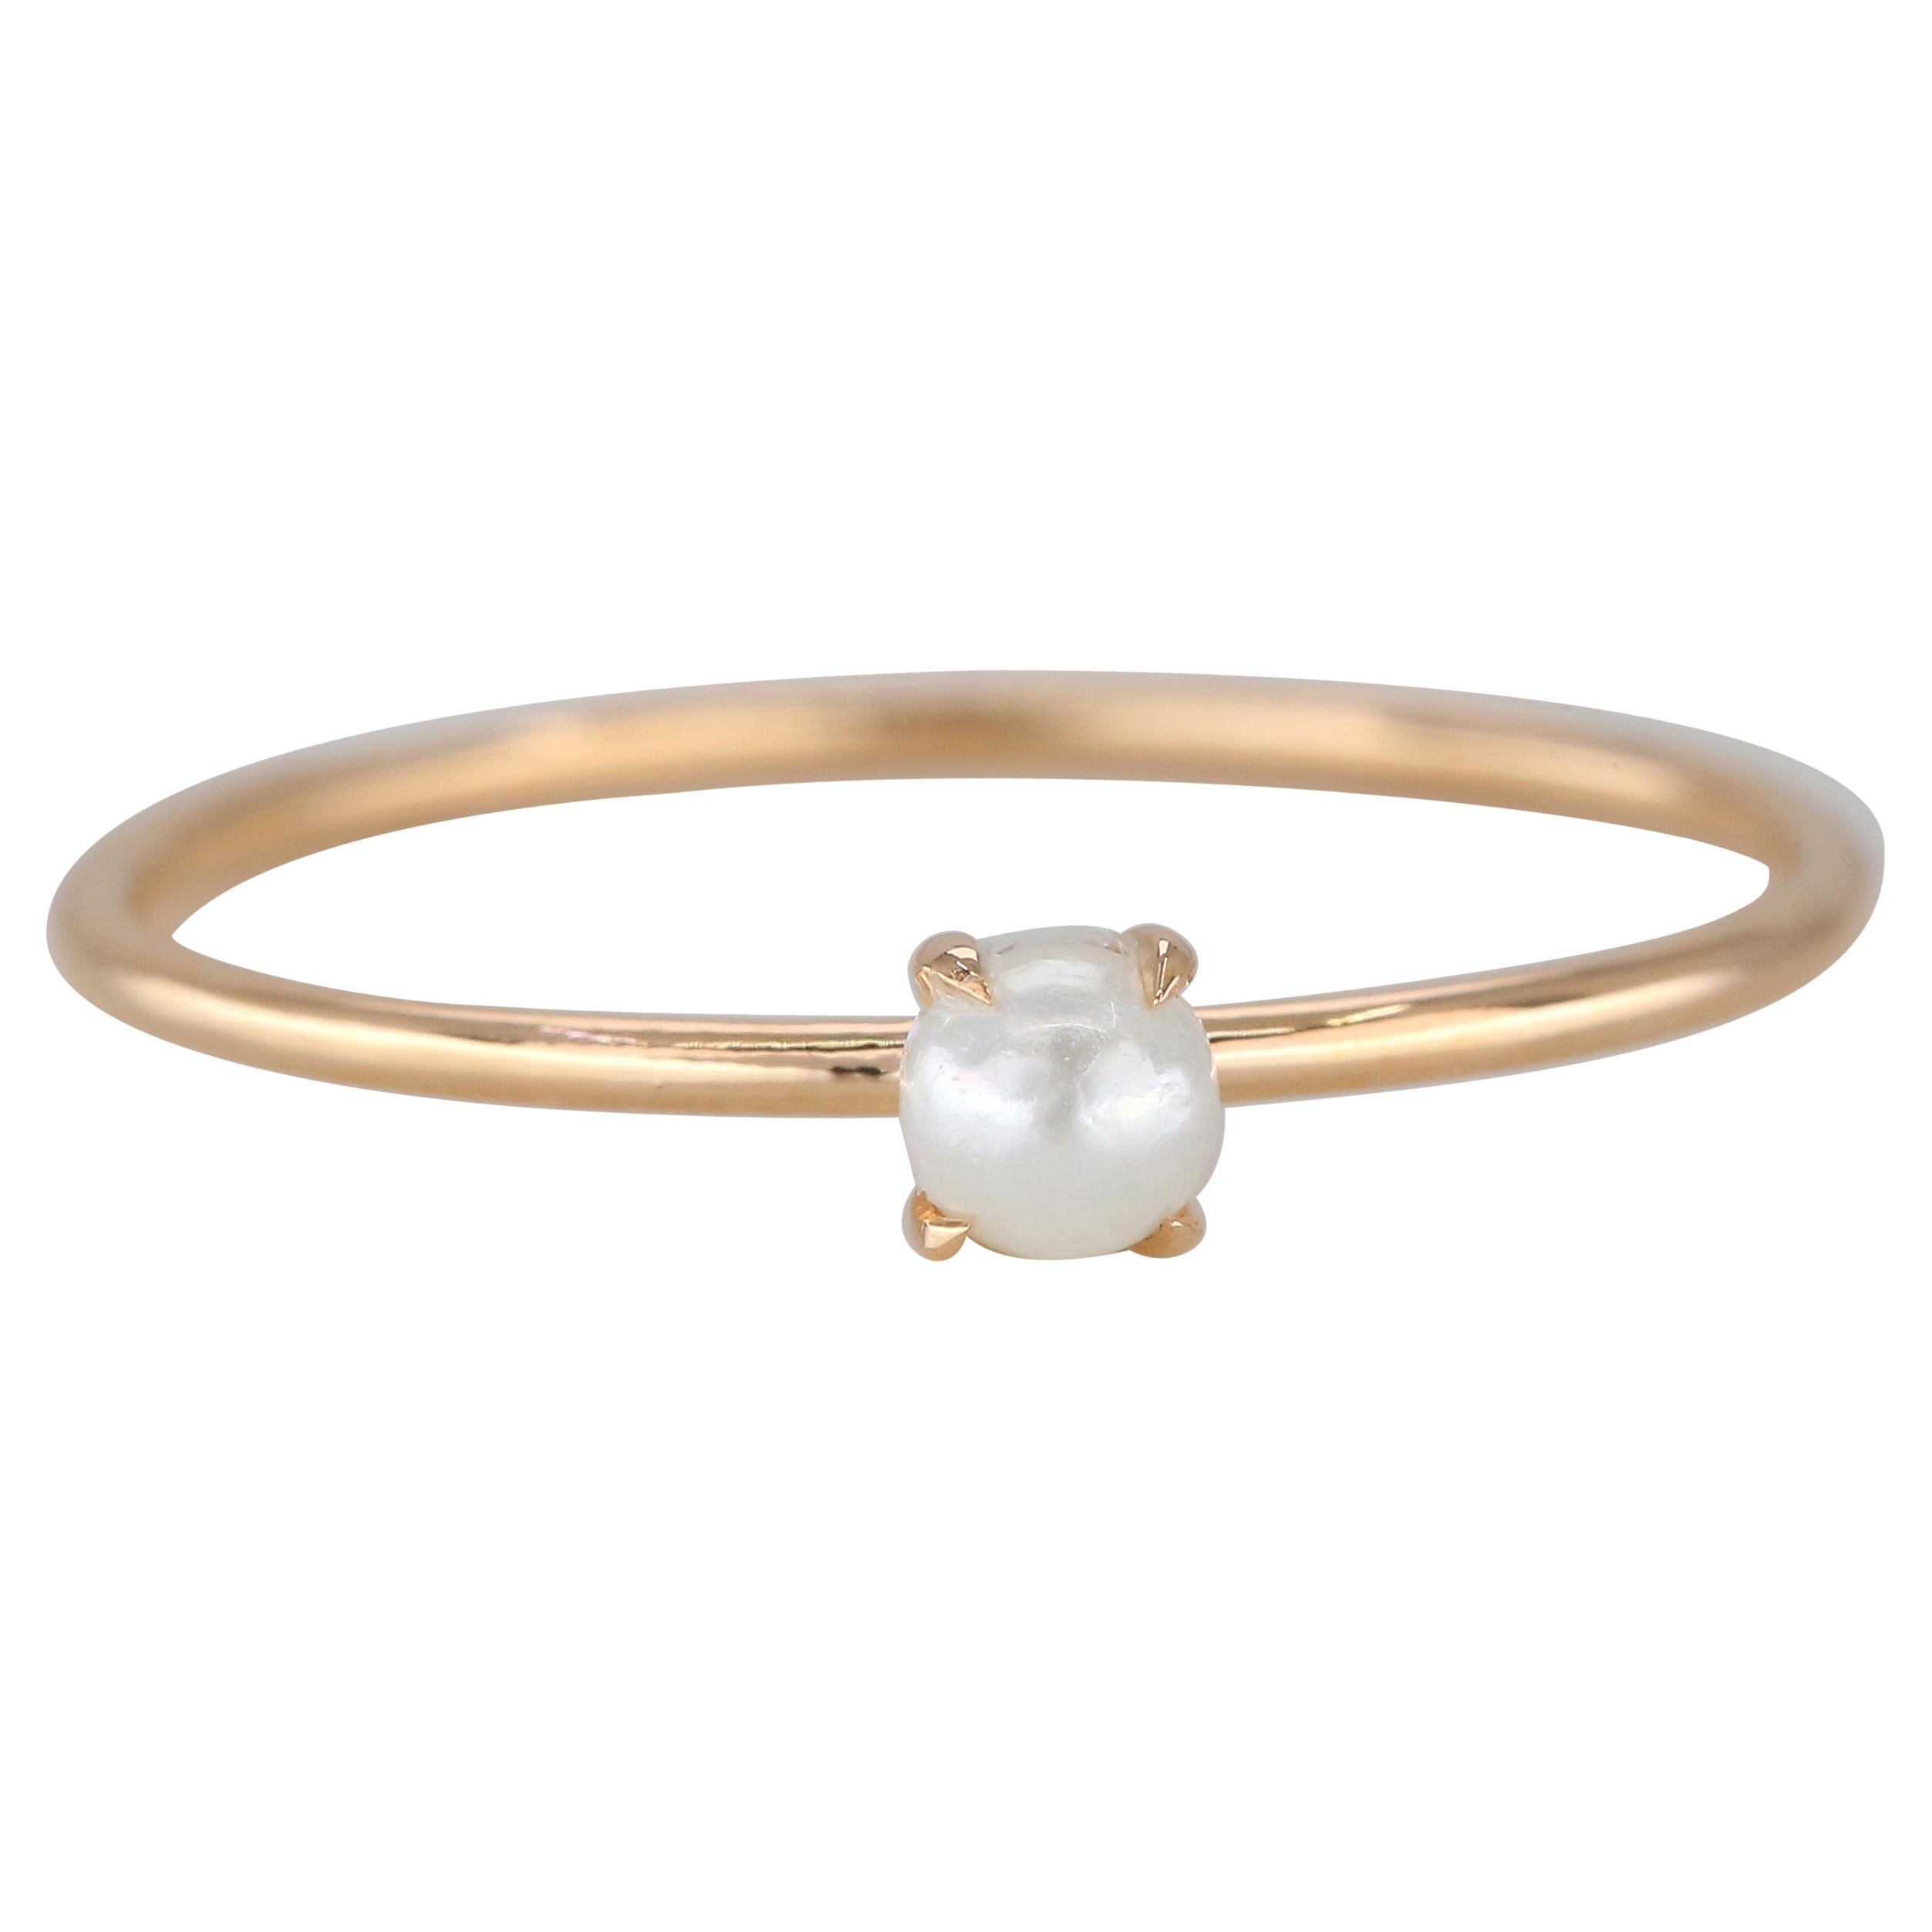 14K Gold Pearl Ring, 14K Gold Solitaire Pearl Ring